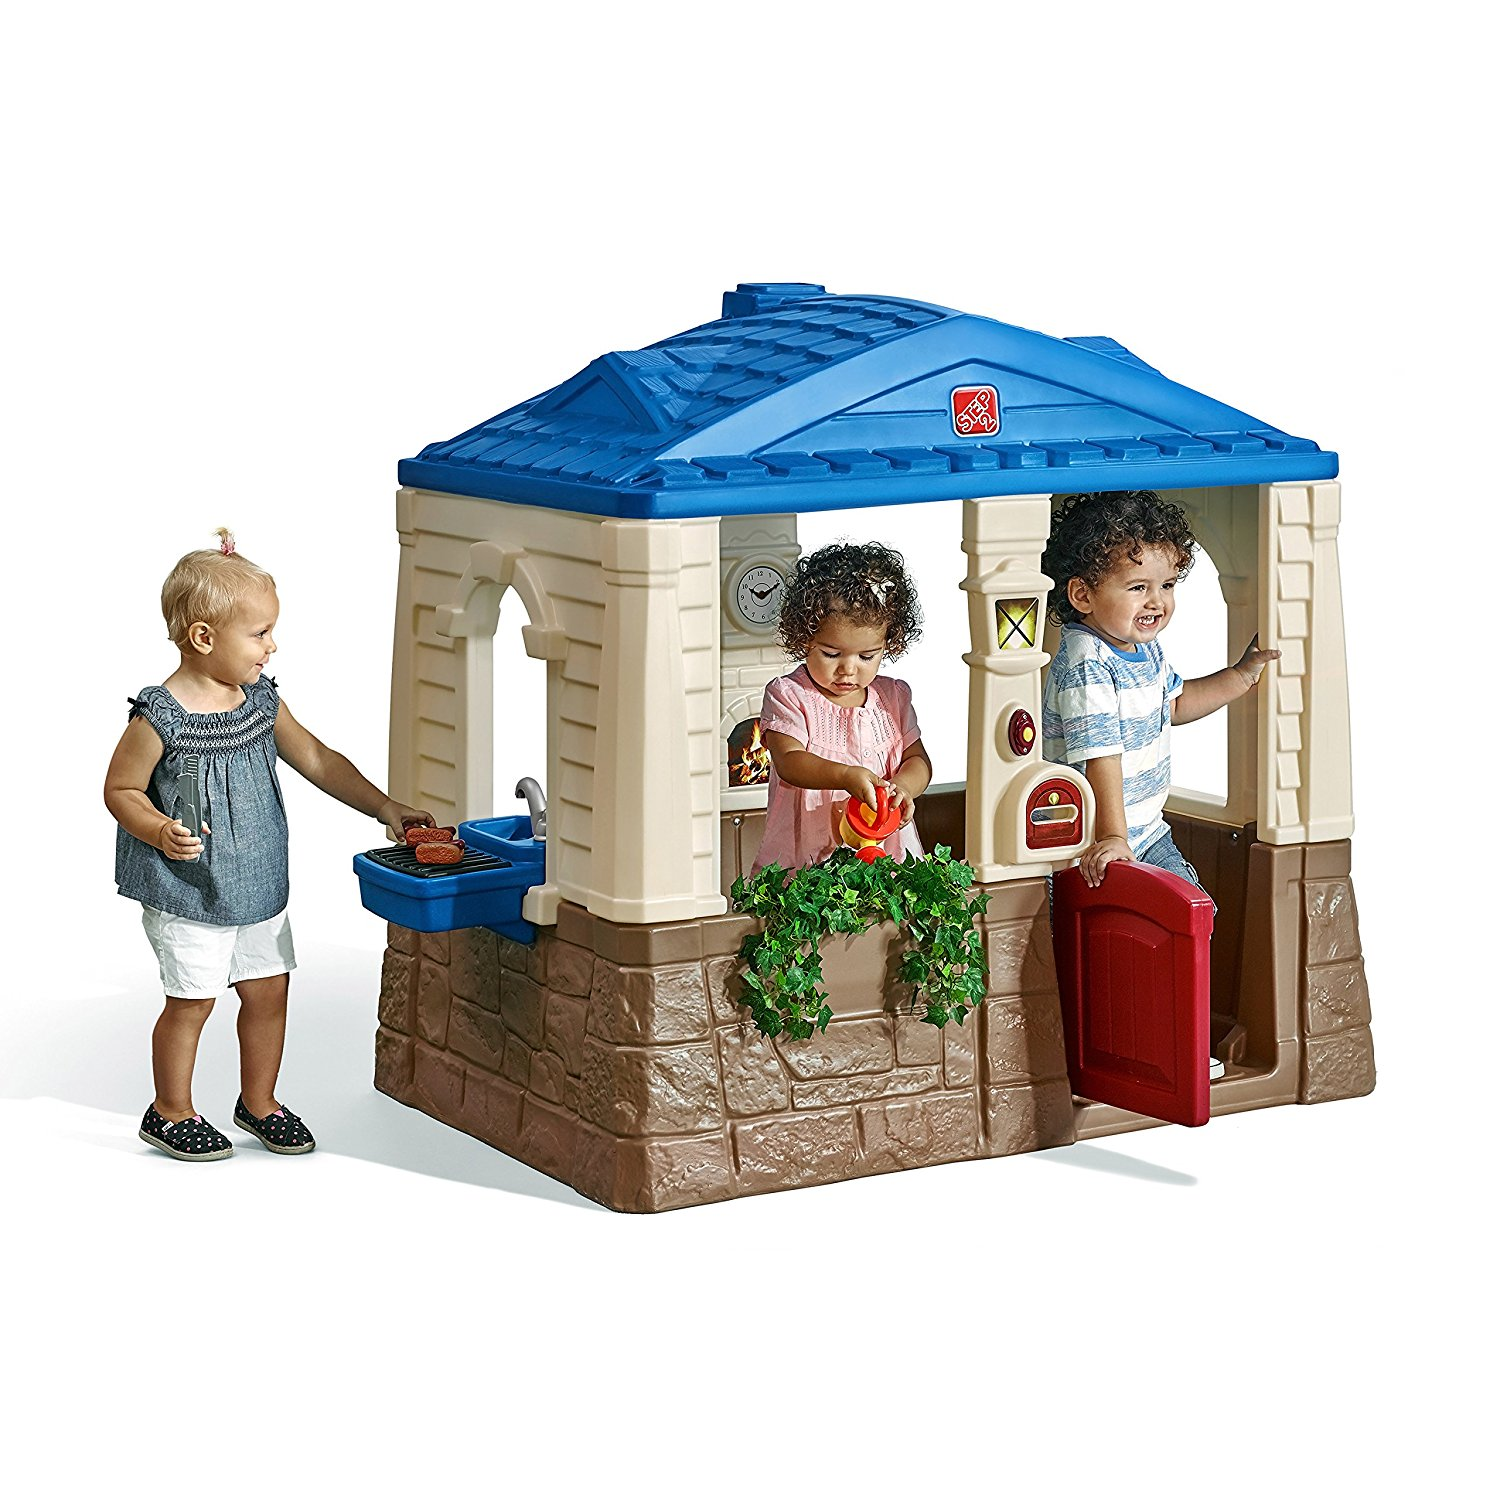 play house - I love an outdoor playhouse to work on social skills, turn taking, and pretend play in a more natural environment. There are a variety of types of play that can be worked on a playhouse; solitary play ( kids play on their own but not noticing other kids), onlooker play (kids are watching but not yet joining, parellel play (children play side by side without any interaction), associative play (kids ask questions to each other but there are no real rules) and social play, (children are sharing ideas and toys, follow rules and guidelines). Kids can reenact what they see in every day activities by pretending to cook, clean, eat, etc.